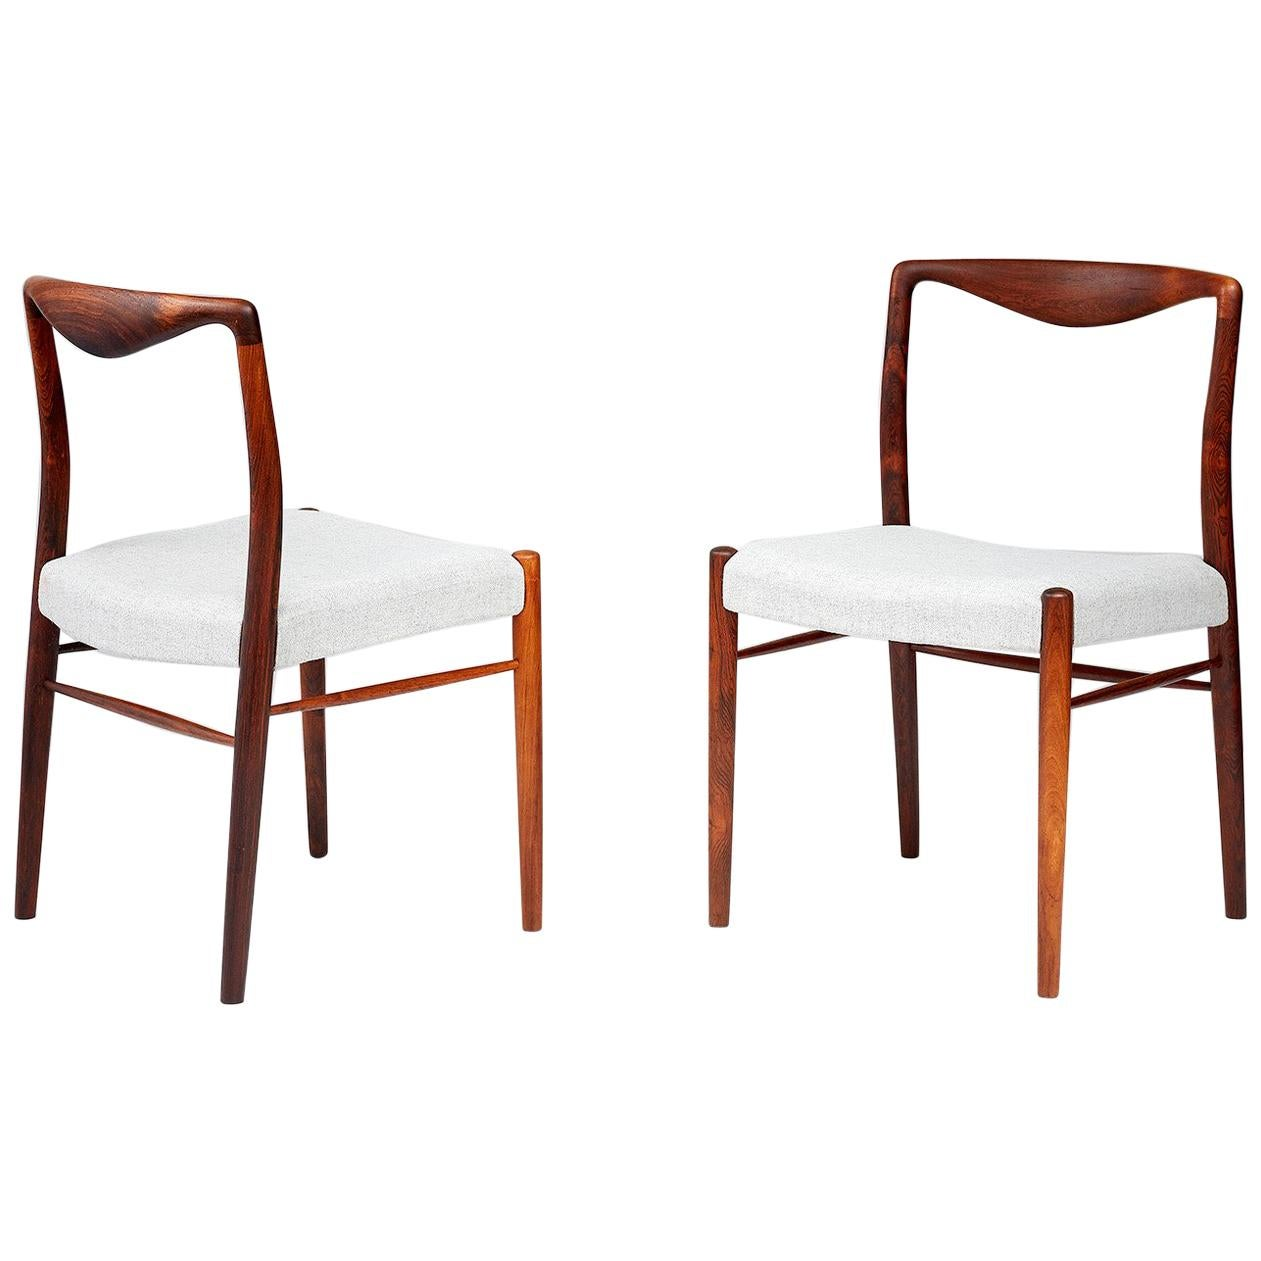 Kai Lyngfeldt-Larsen Pair of 1960s Danish Rosewood Side Chairs